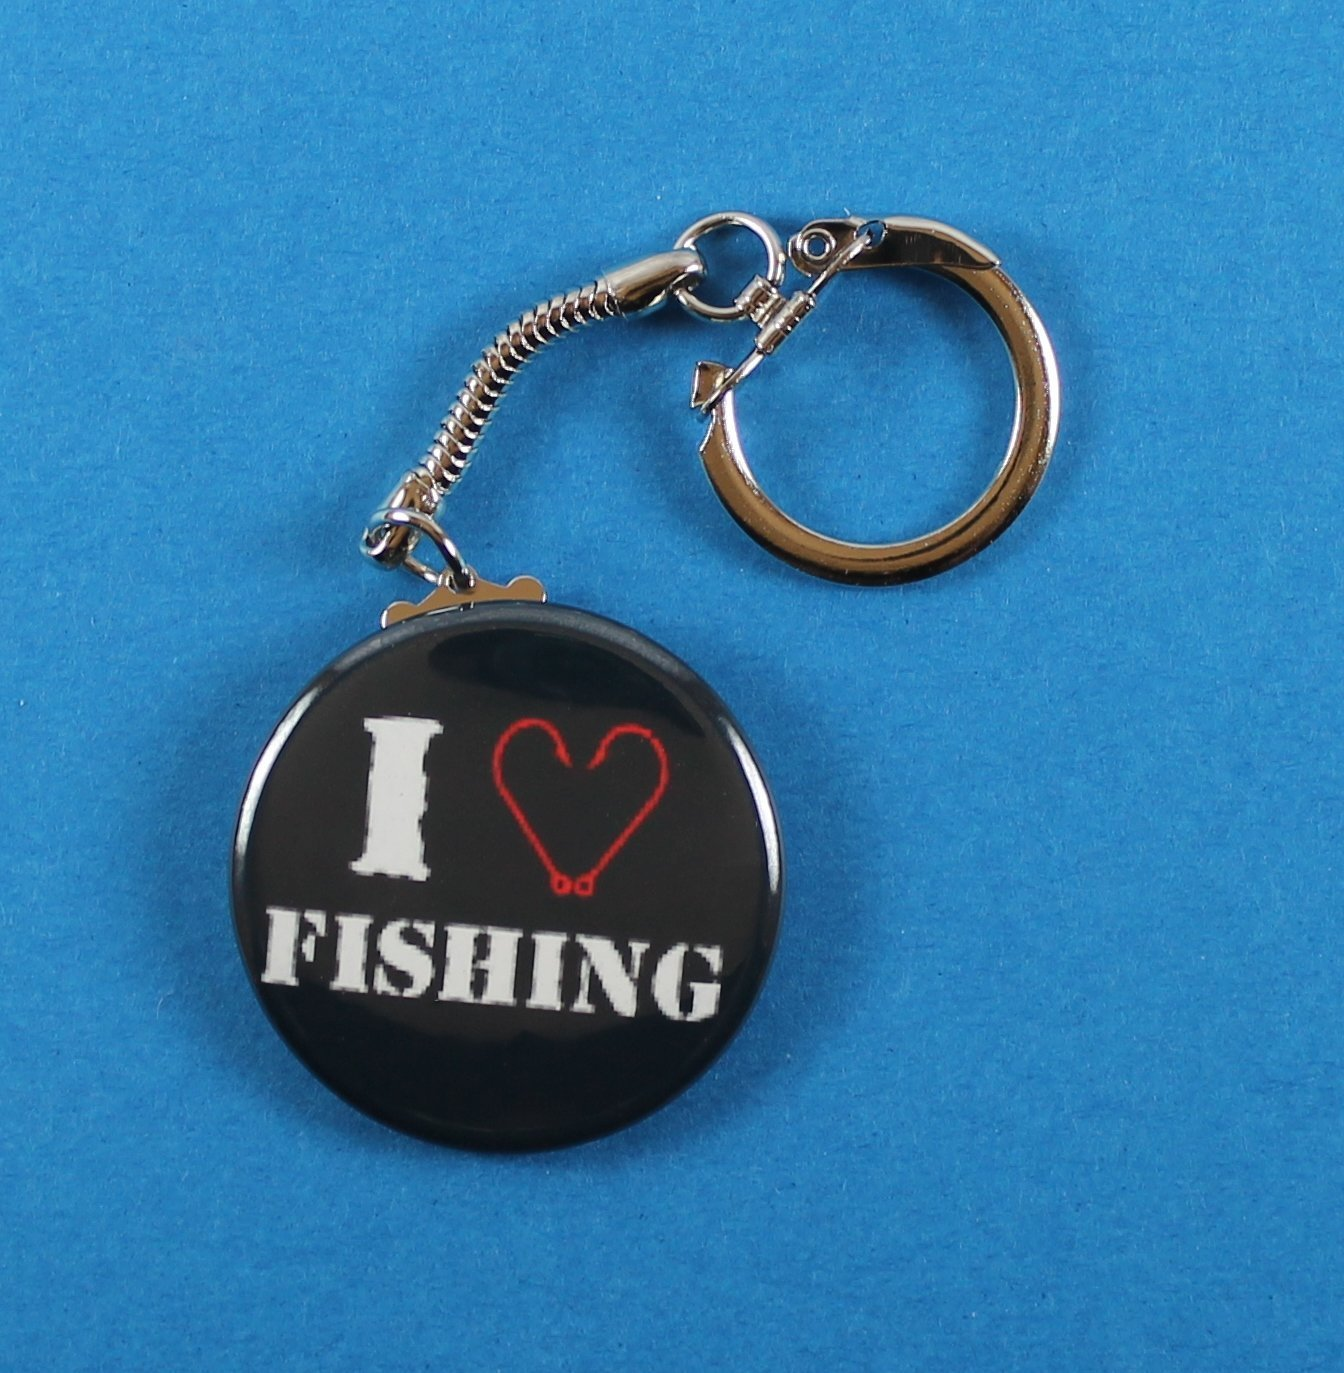 Amazon com: I Love Fishing: Handmade